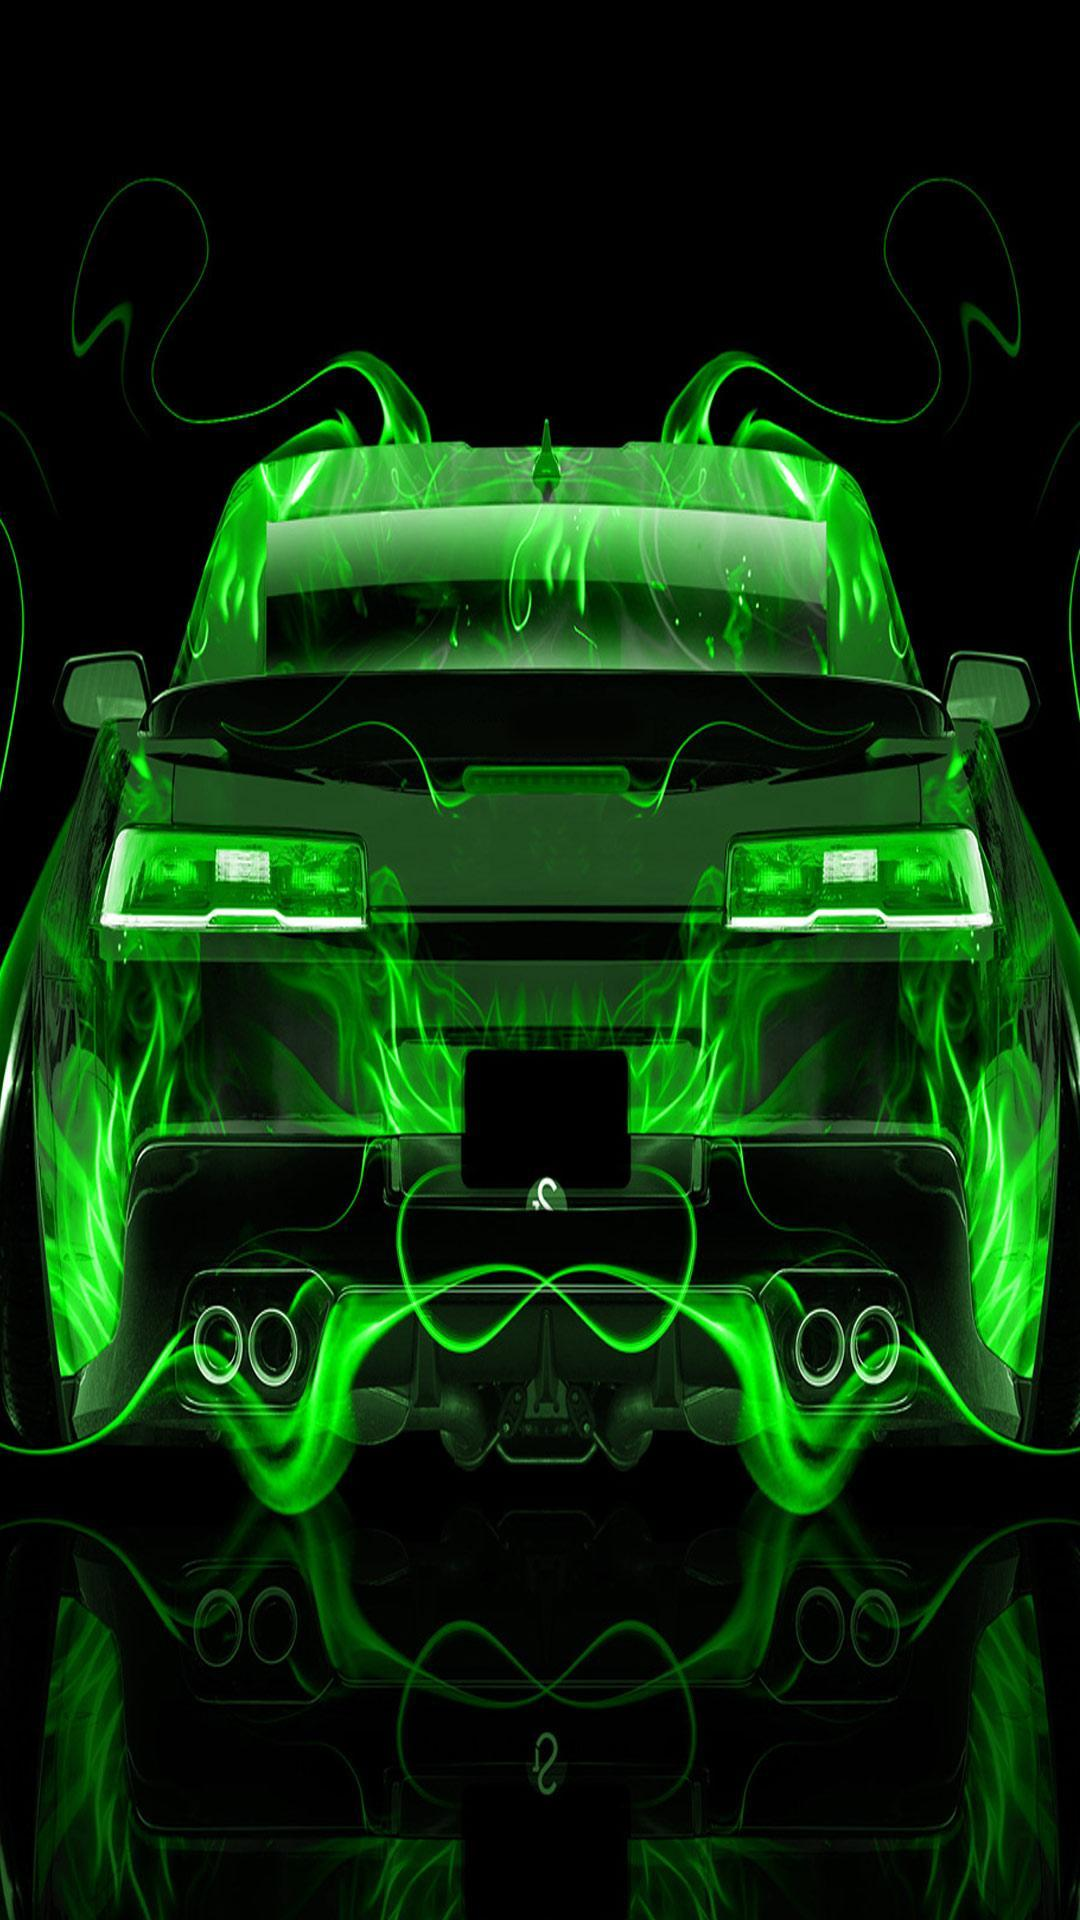 Hd Neon Car Live Wallpaper For Android Apk Download